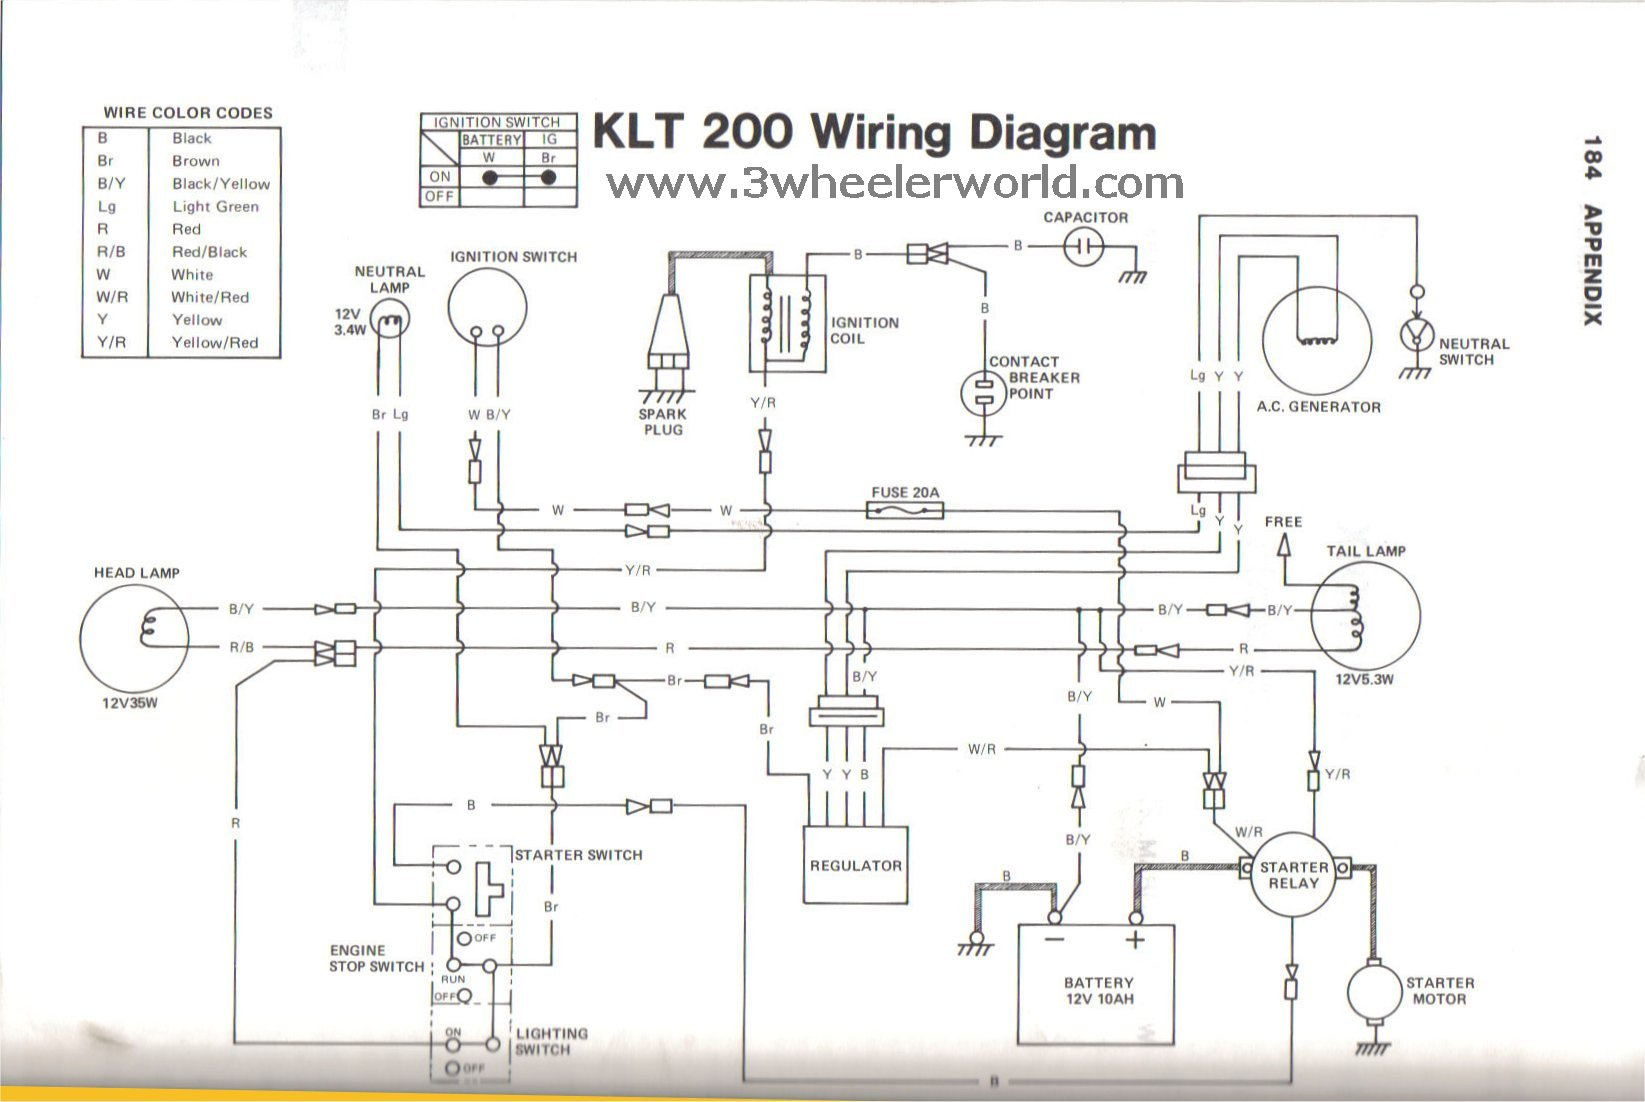 1981 Kawasaki Wiring Diagram Reinvent Your Kz1000 3 Wheeler World Tech Help Diagrams Rh 3wheelerworld Com Kz550